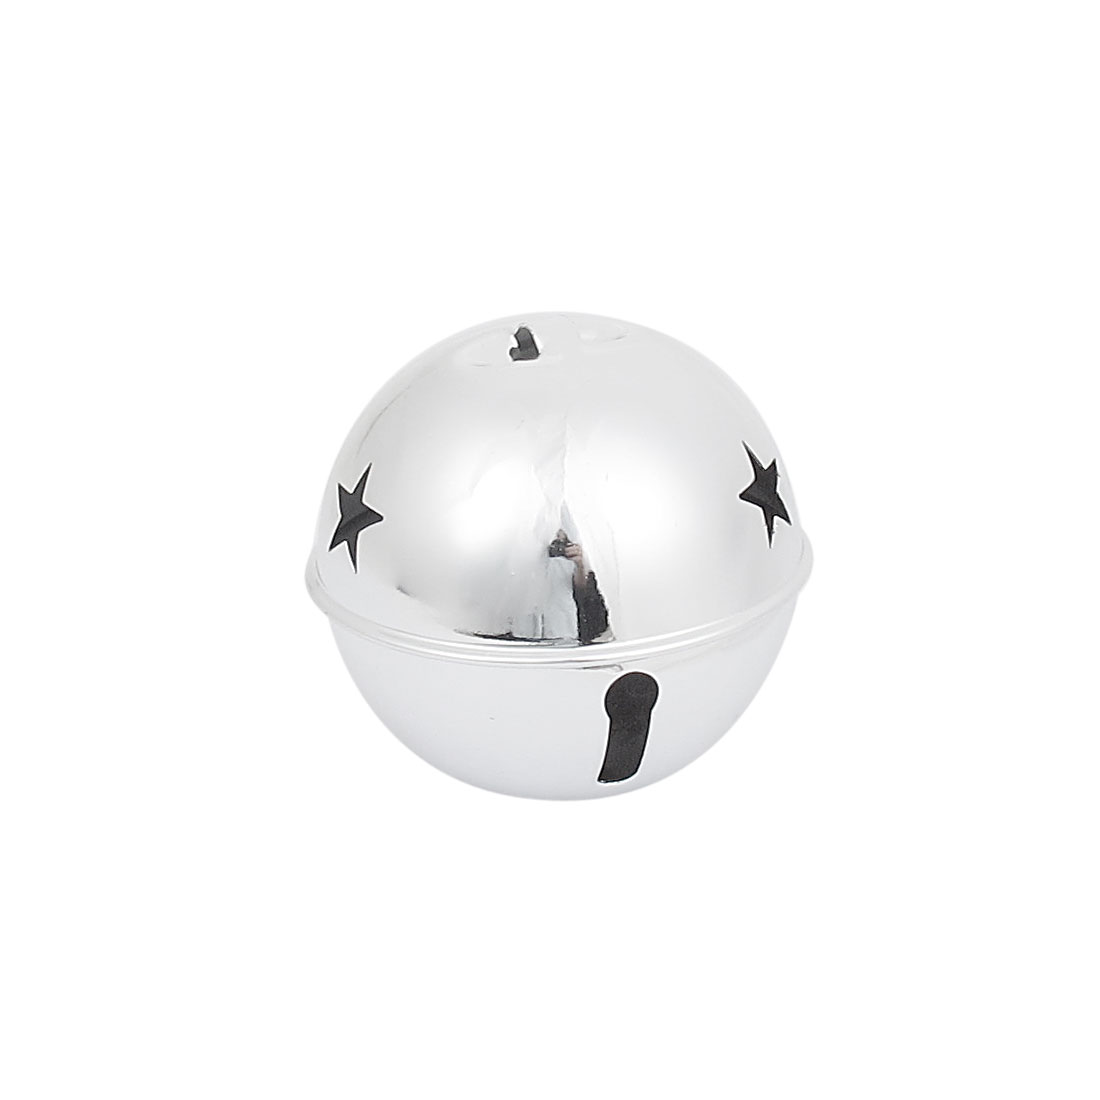 80mm Diameter Silver Tone Metal Star Detail Ball Shape Hollow Out Design Jingle Ring Bell Ornament for Christmas Tree Party